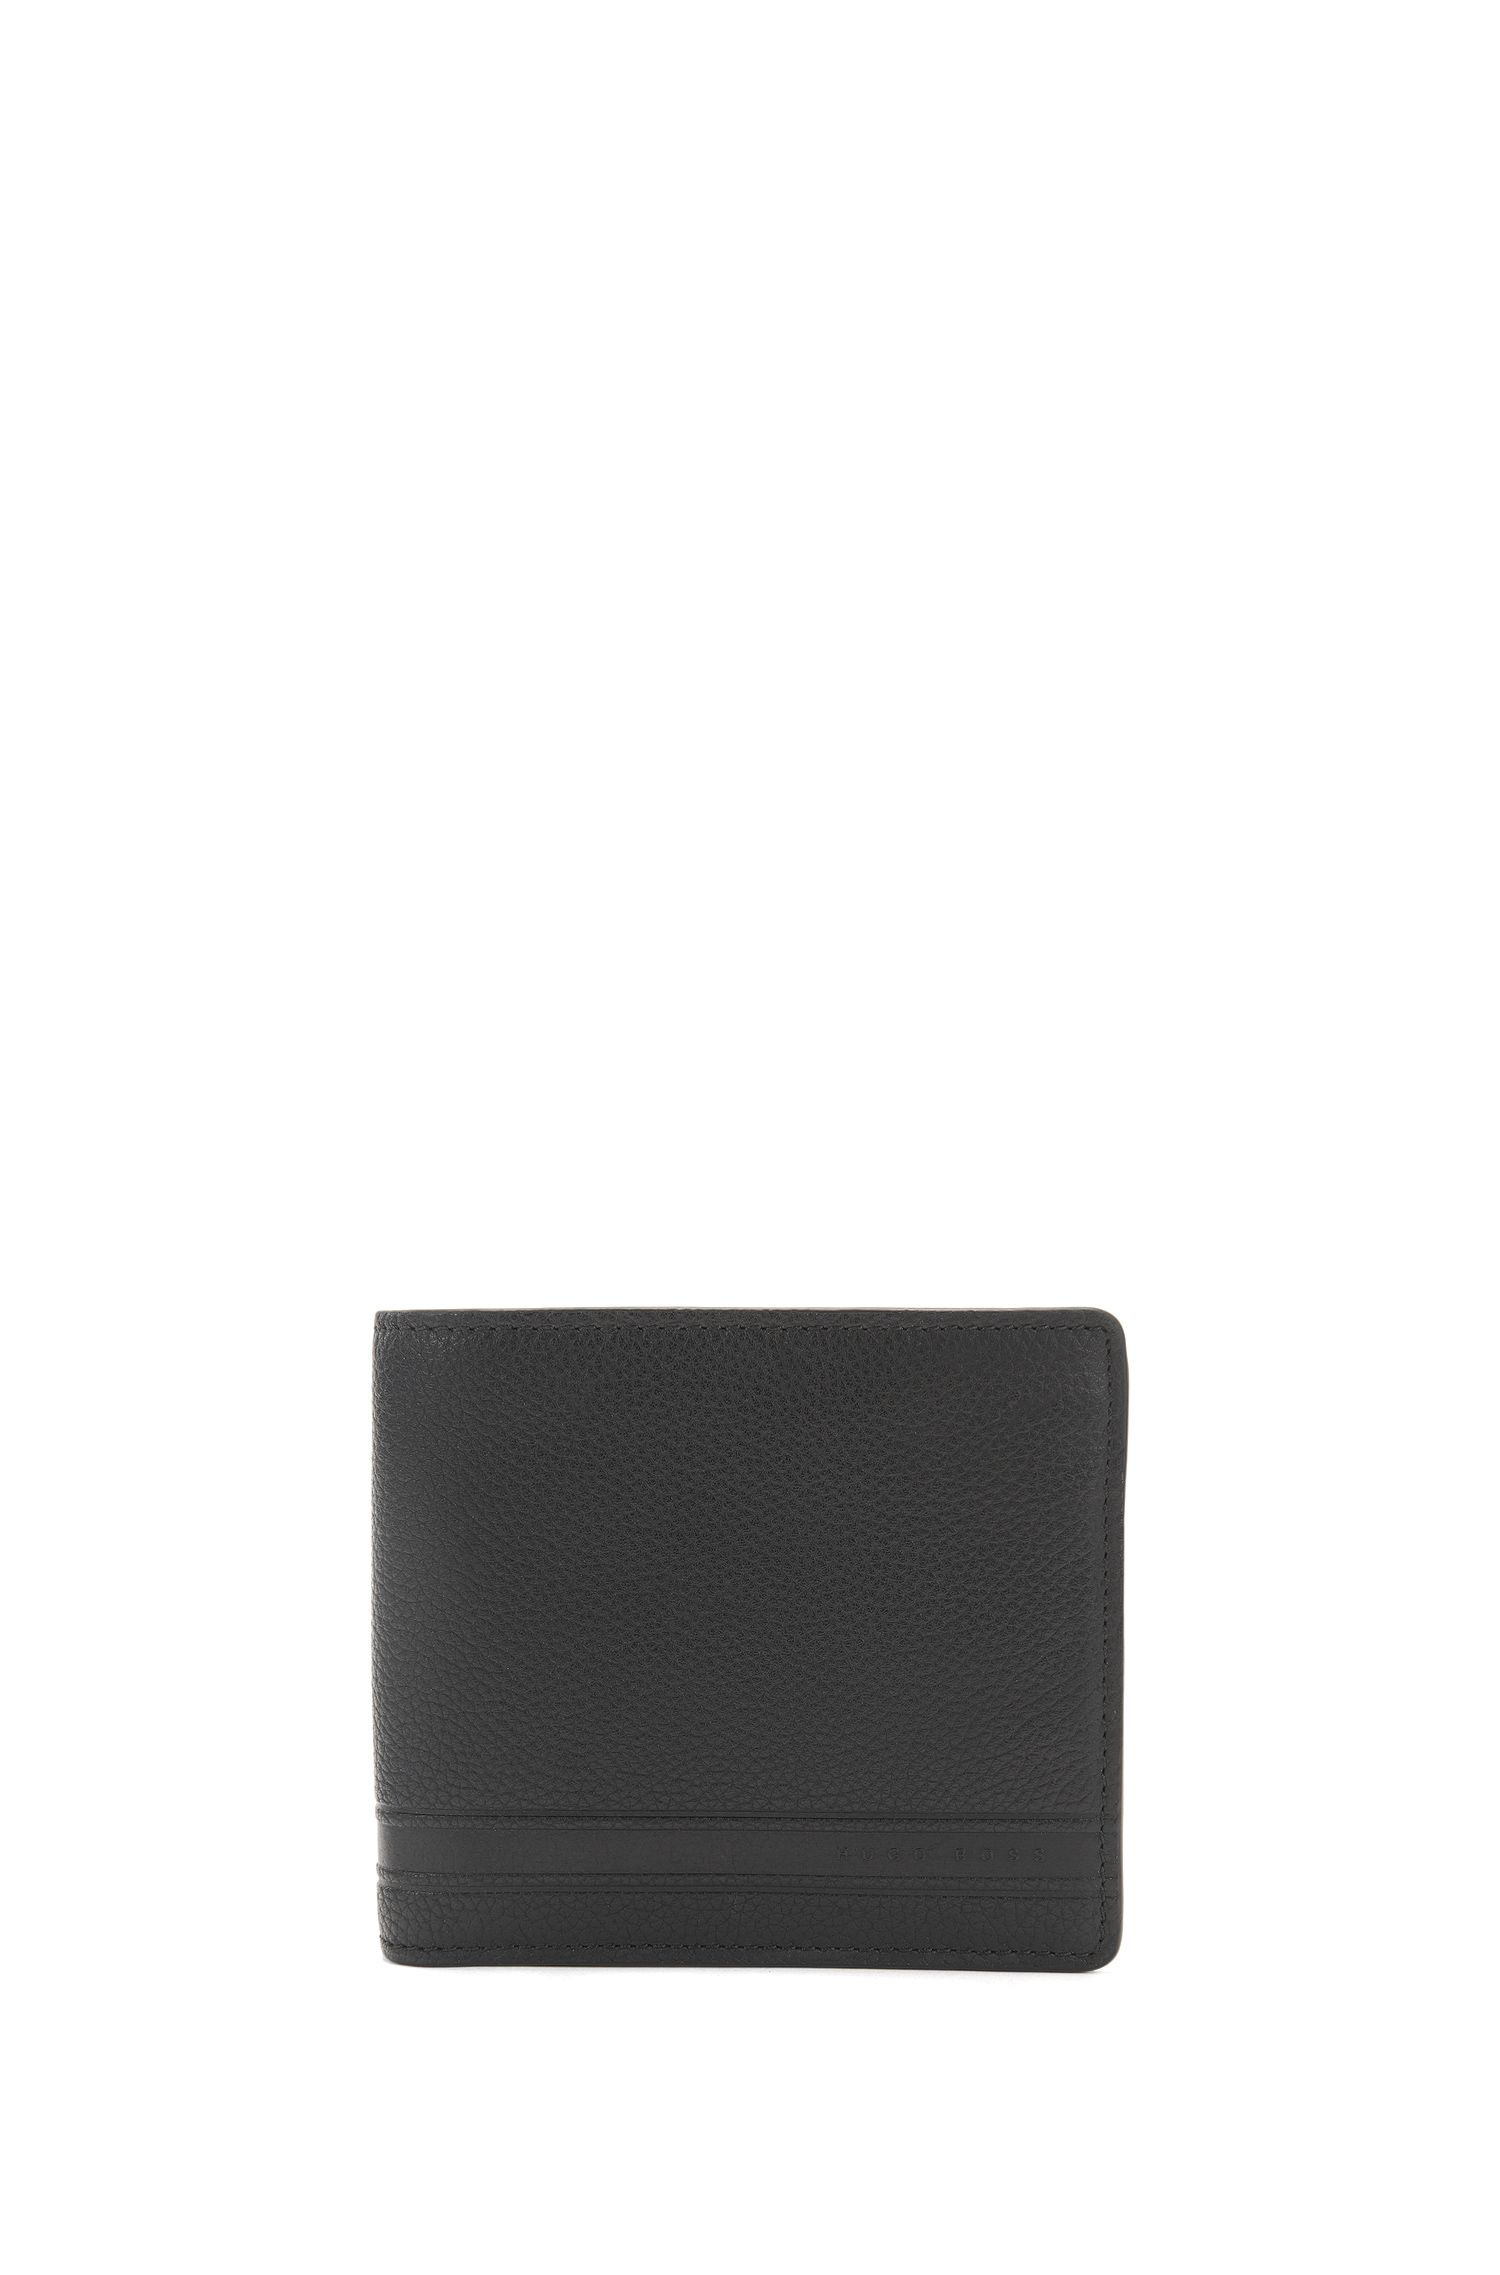 Leather card case and wallet gift set with embossing